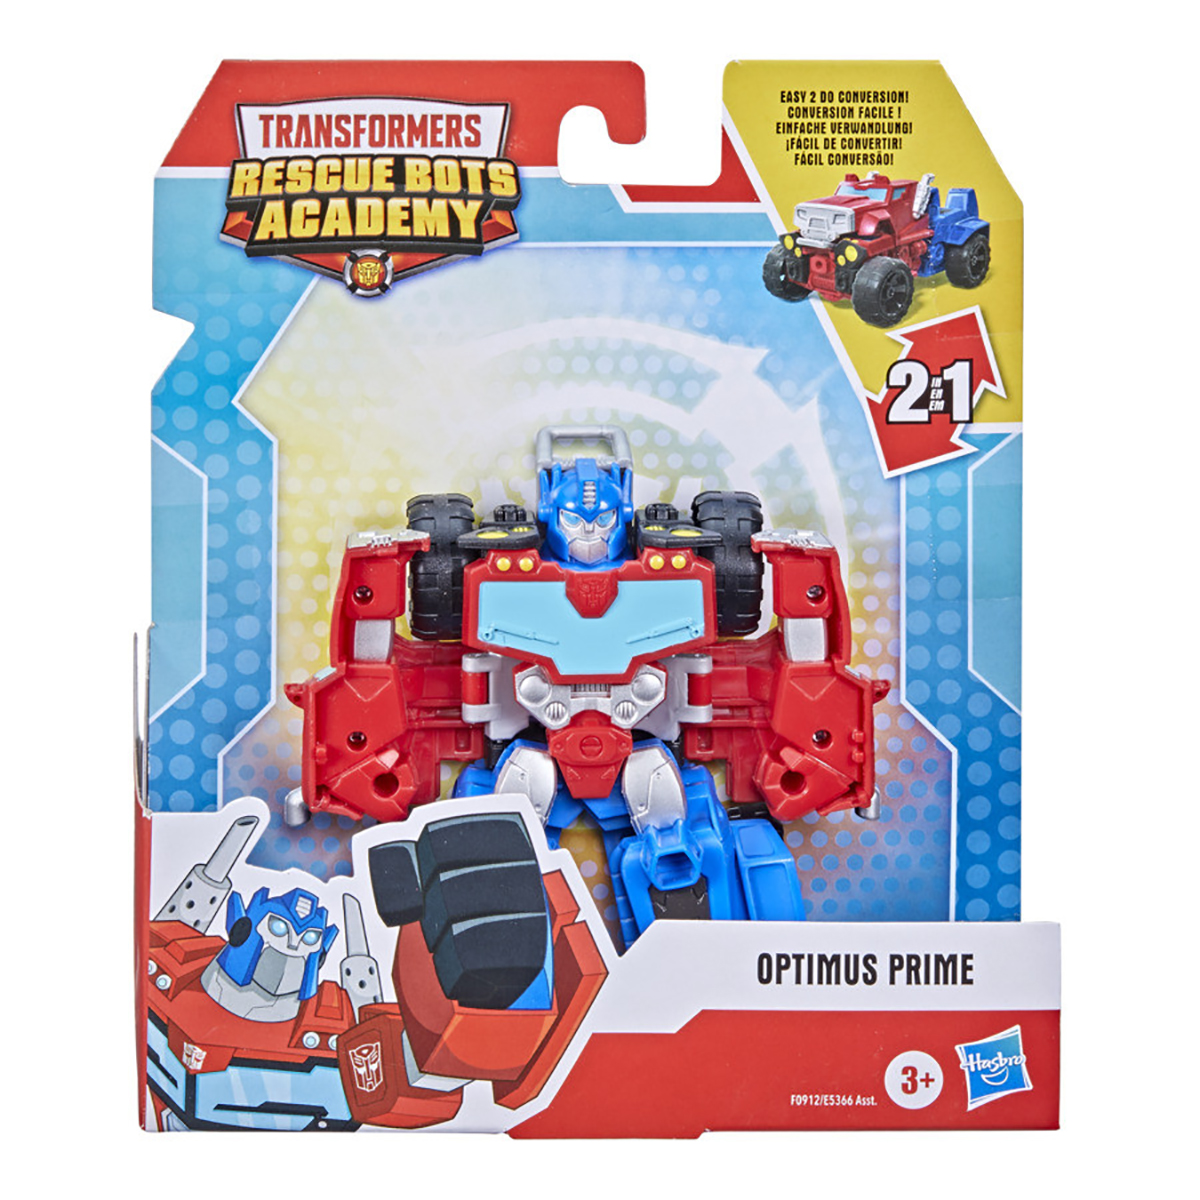 Figurina Transformers Rescue Bots Academy, Optimus Prime, F0912